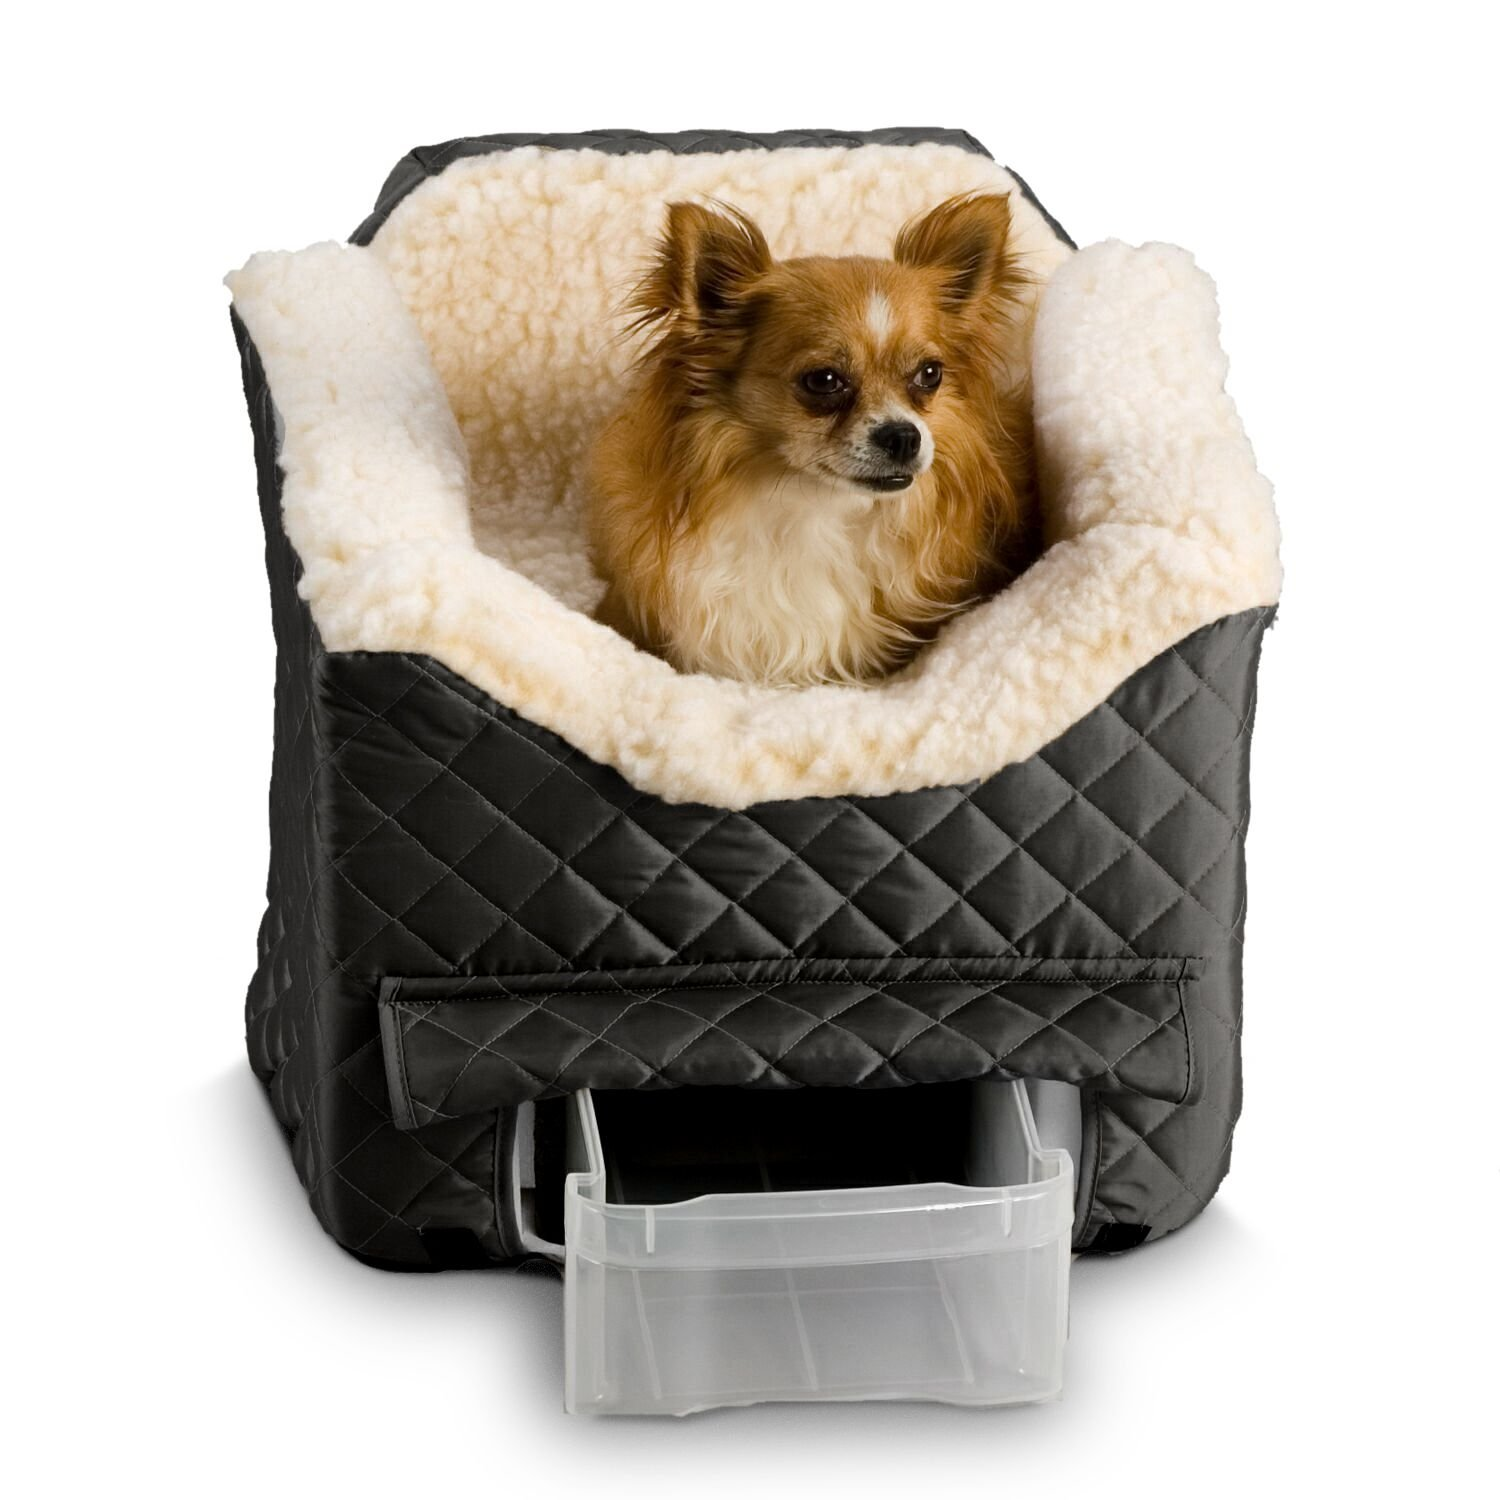 Amazon.com : Snoozer Lookout II Pet Car Seat, Medium II, Black ...